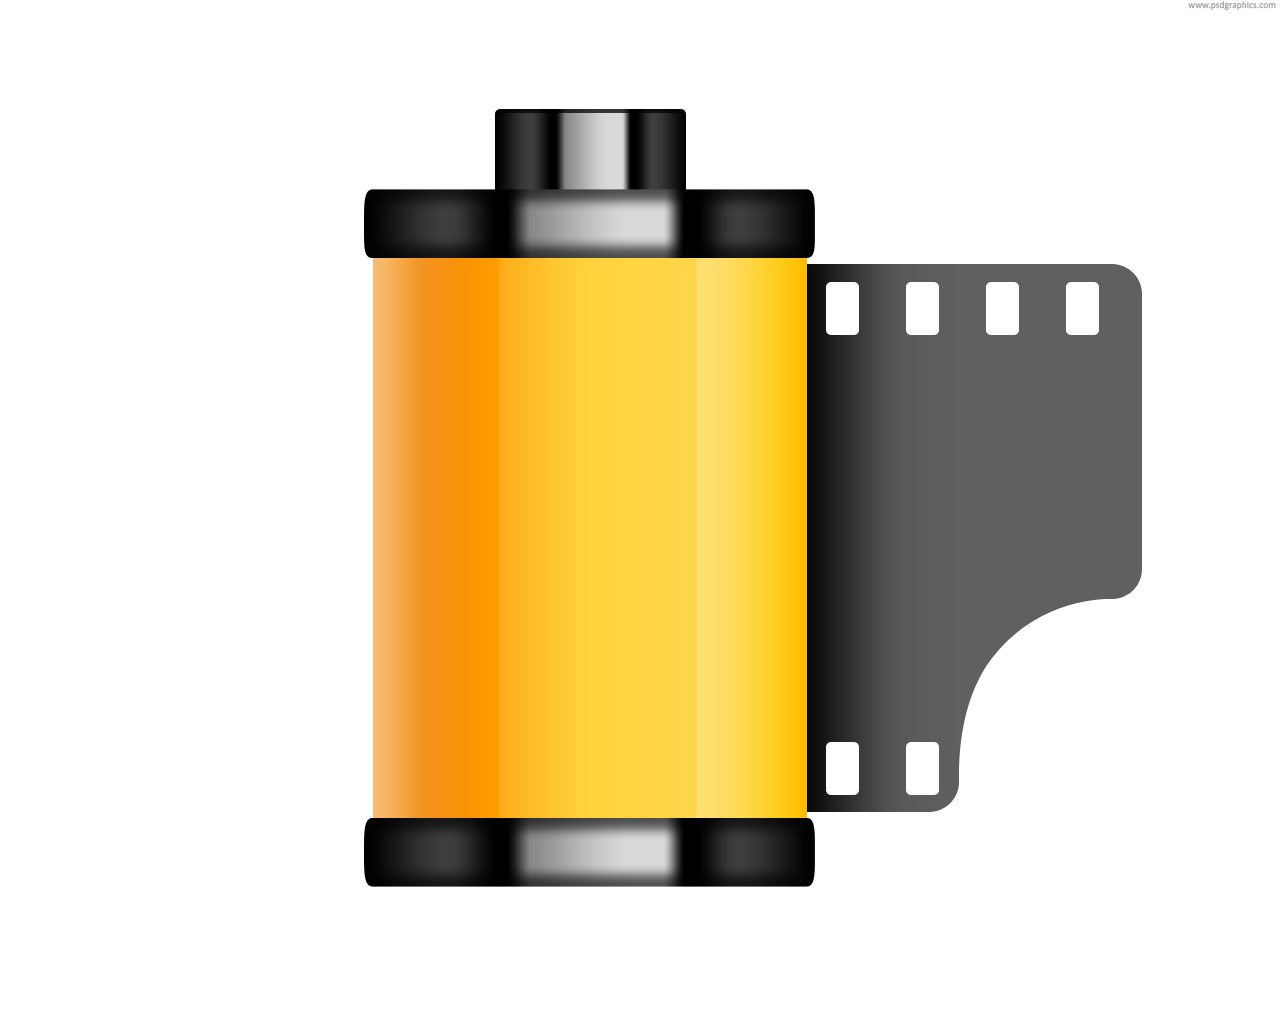 15 Film Roll Icon Images